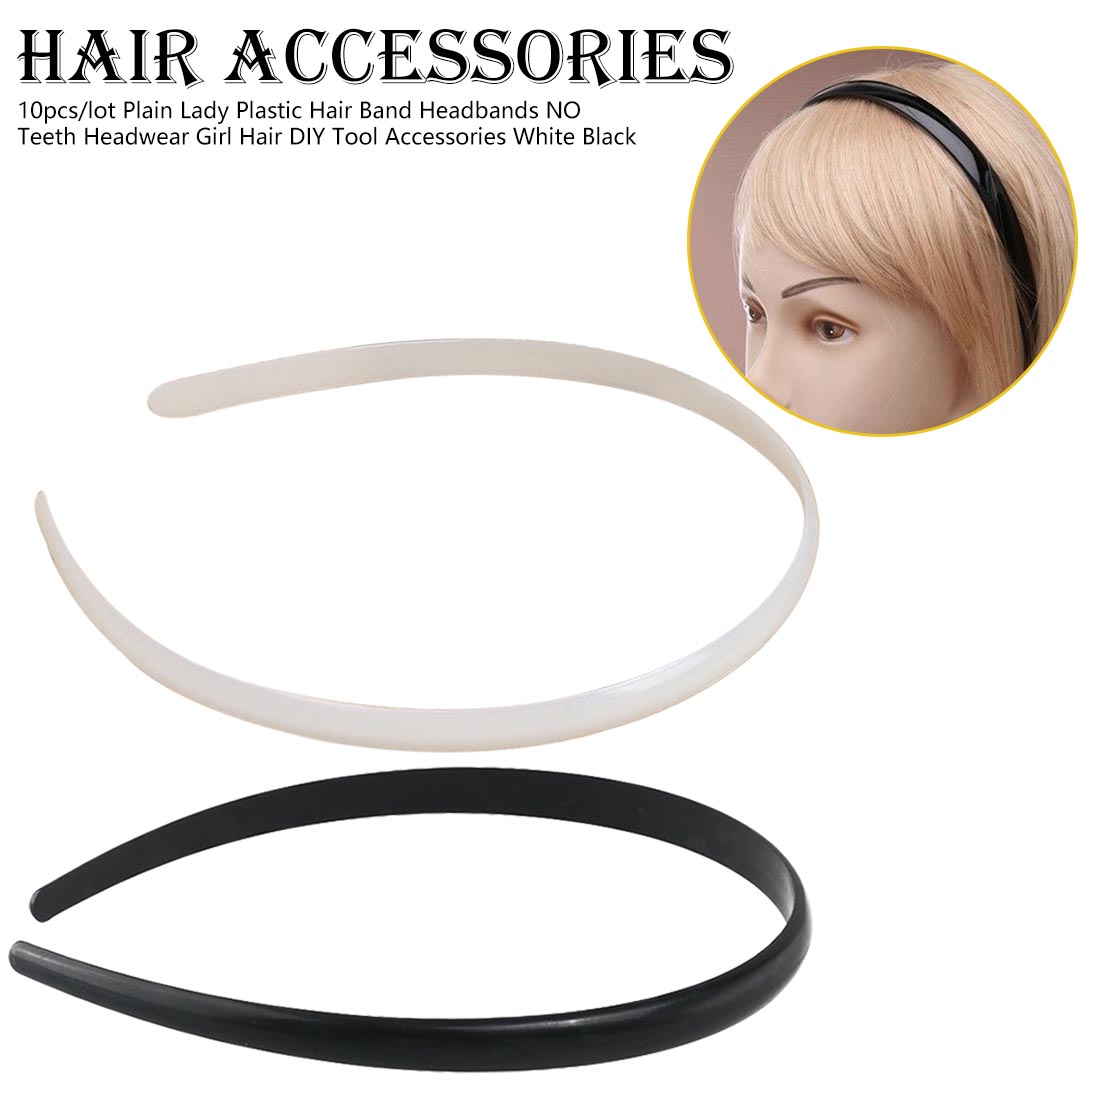 10pcs/lot Plain Lady Plastic Hair Band Headbands NO Teeth Headwear Girl Hair DIY Tool Accessories White Black